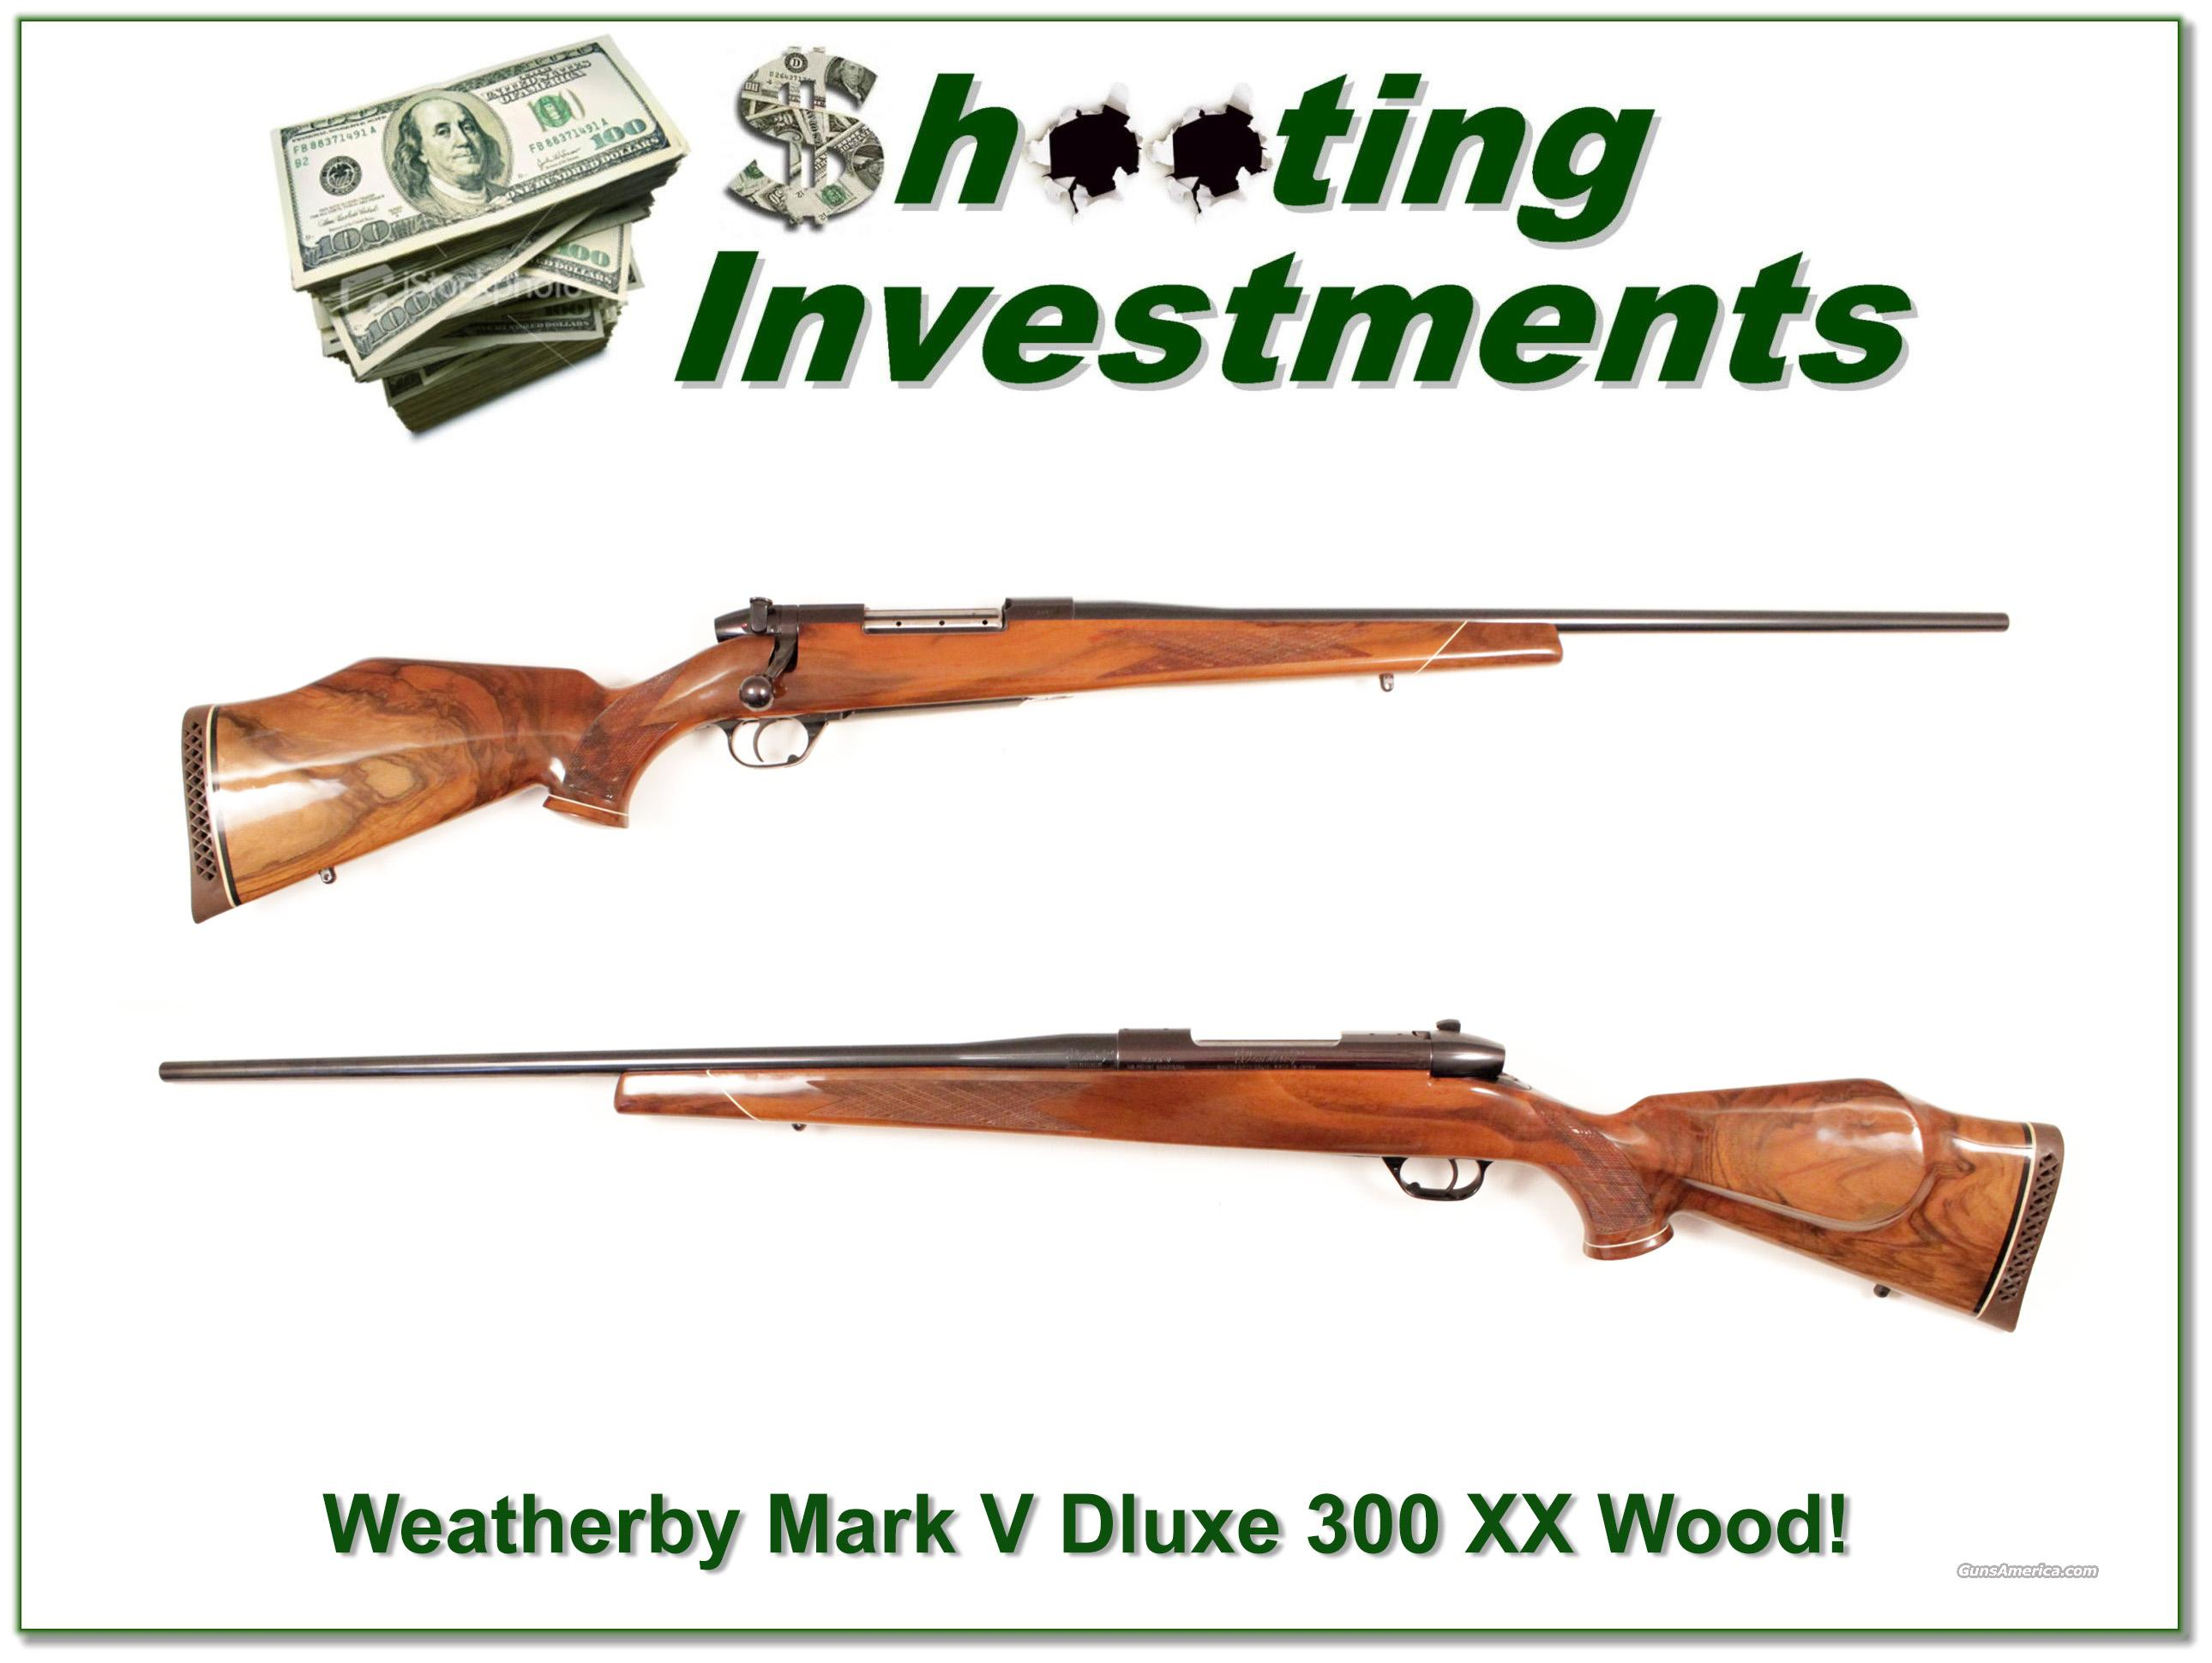 Weatherby Mark V Deluxe 300 Wthy XX Wood!  Guns > Rifles > Weatherby Rifles > Sporting